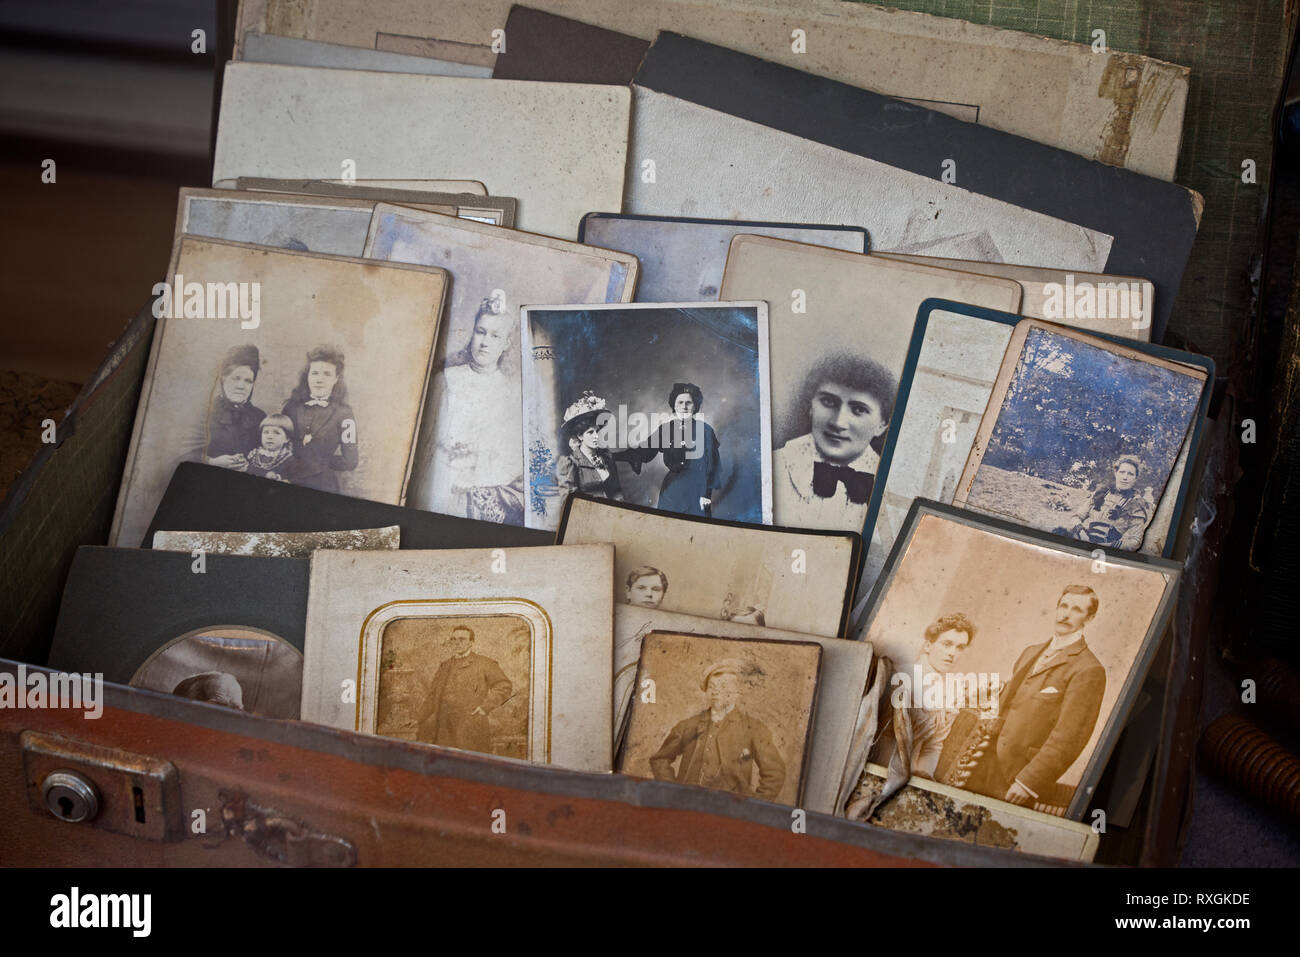 A suitcase full of old vintage photographs in the window of a charity shop in  Edinburgh, Scotland, UK. - Stock Image